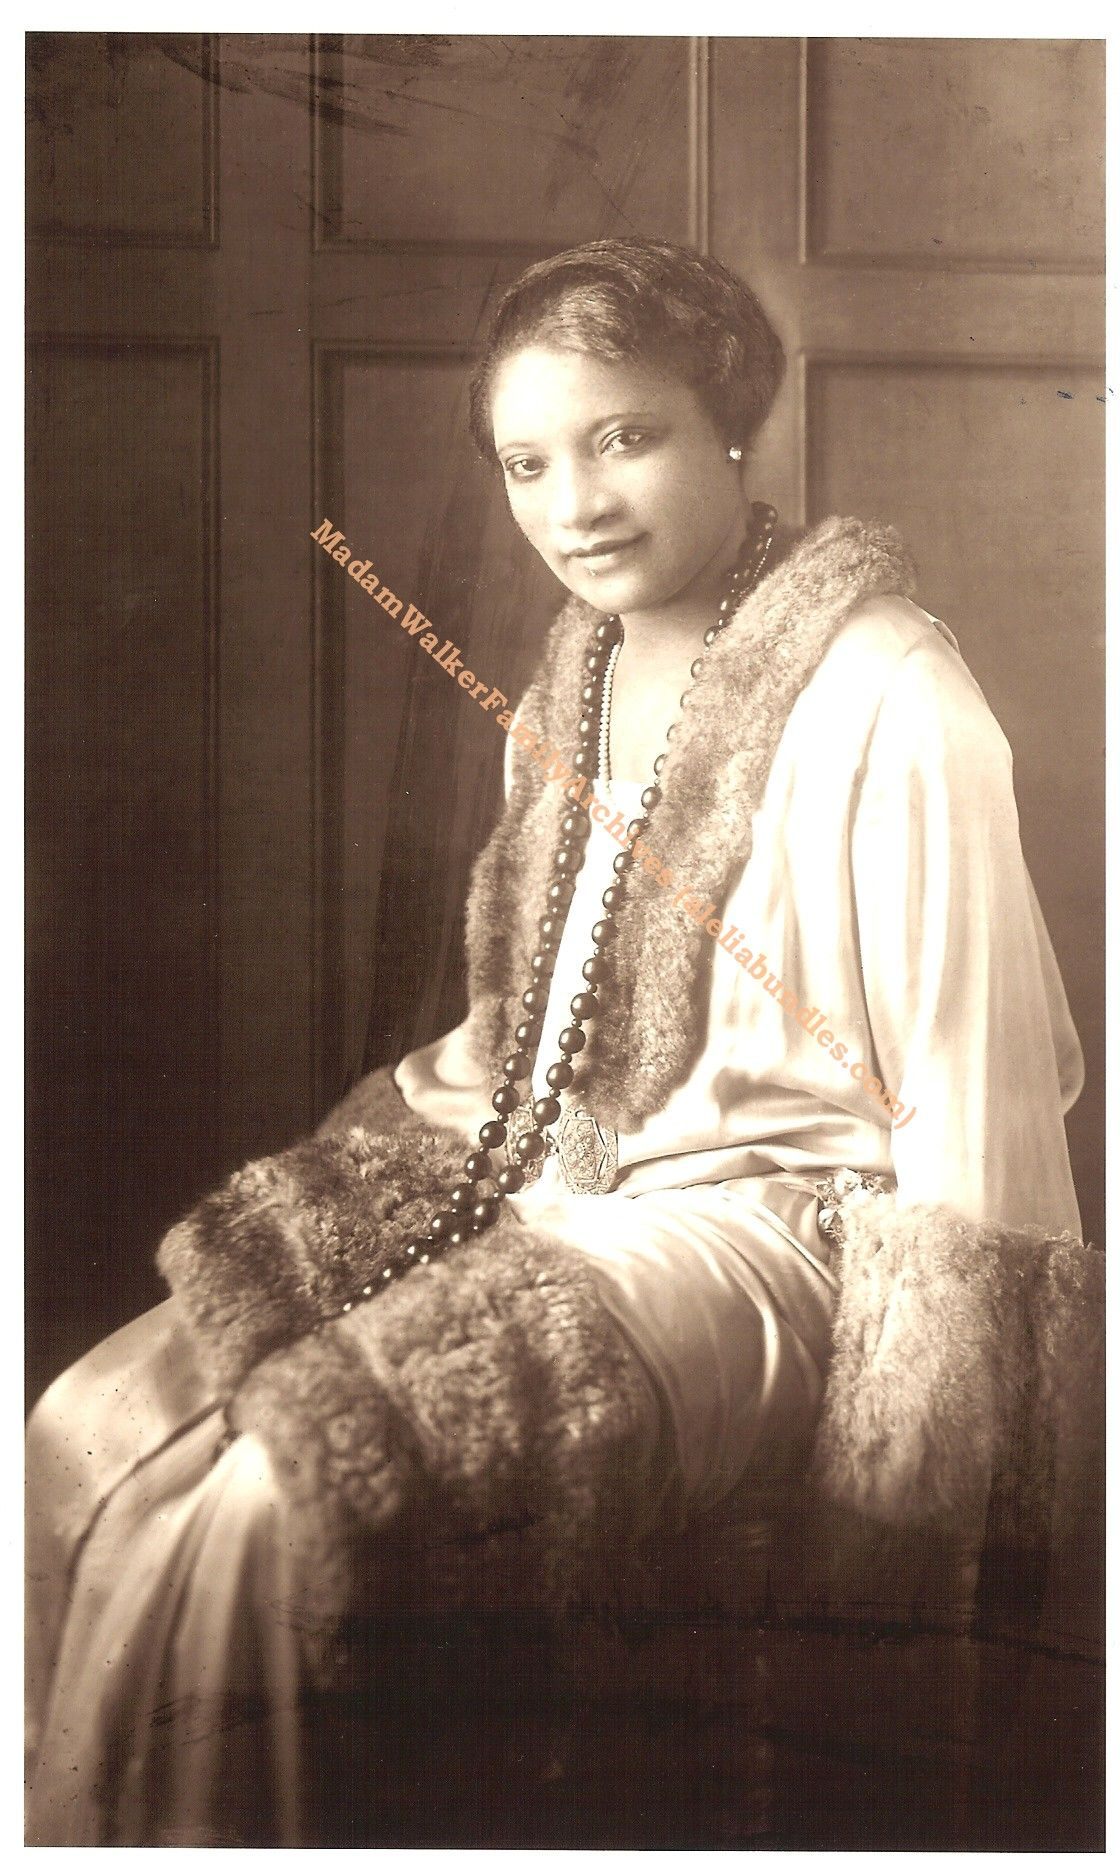 The daughter of Madam C.J. Walker, A'lelia Walker was the